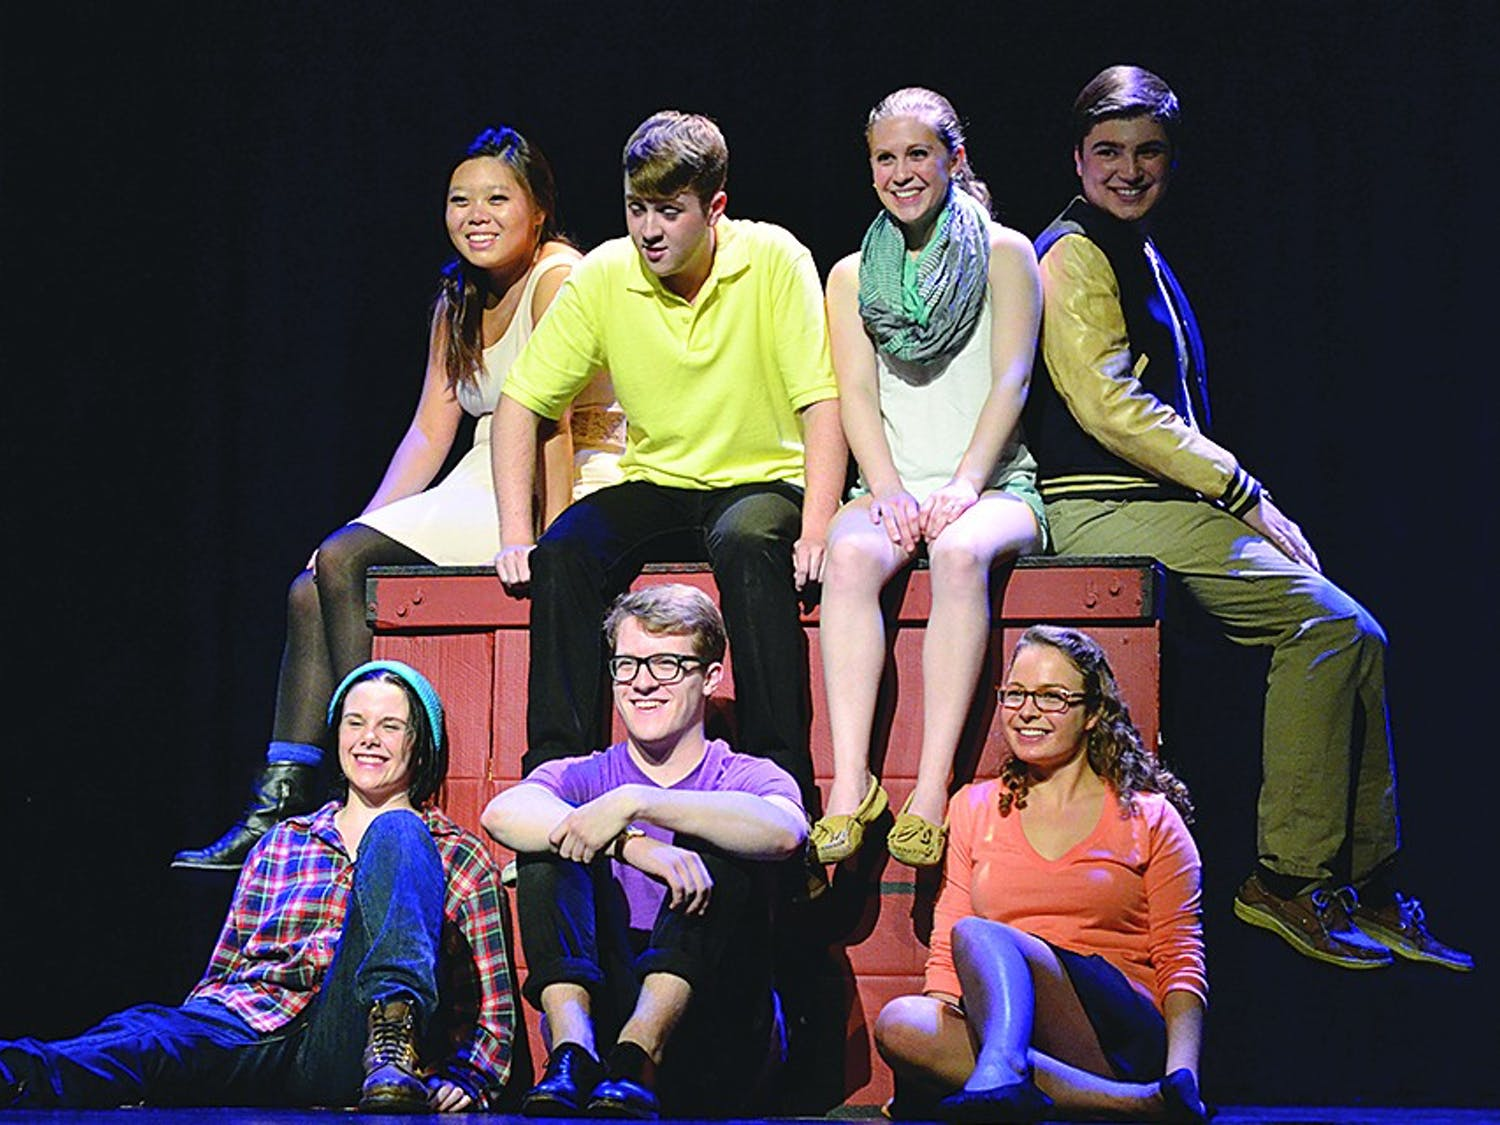 From left, Steffie Park, Connor Sturgis, Rachel Deason, Alex Ferraz, Mollie Paige Wilson, Wesley Darling, and Rachel Anderson act during a dress rehearsal of Dog Sees God: Confessions of a Teenage Blockhead. The play premieres on Friday evening and will run through Sunday.